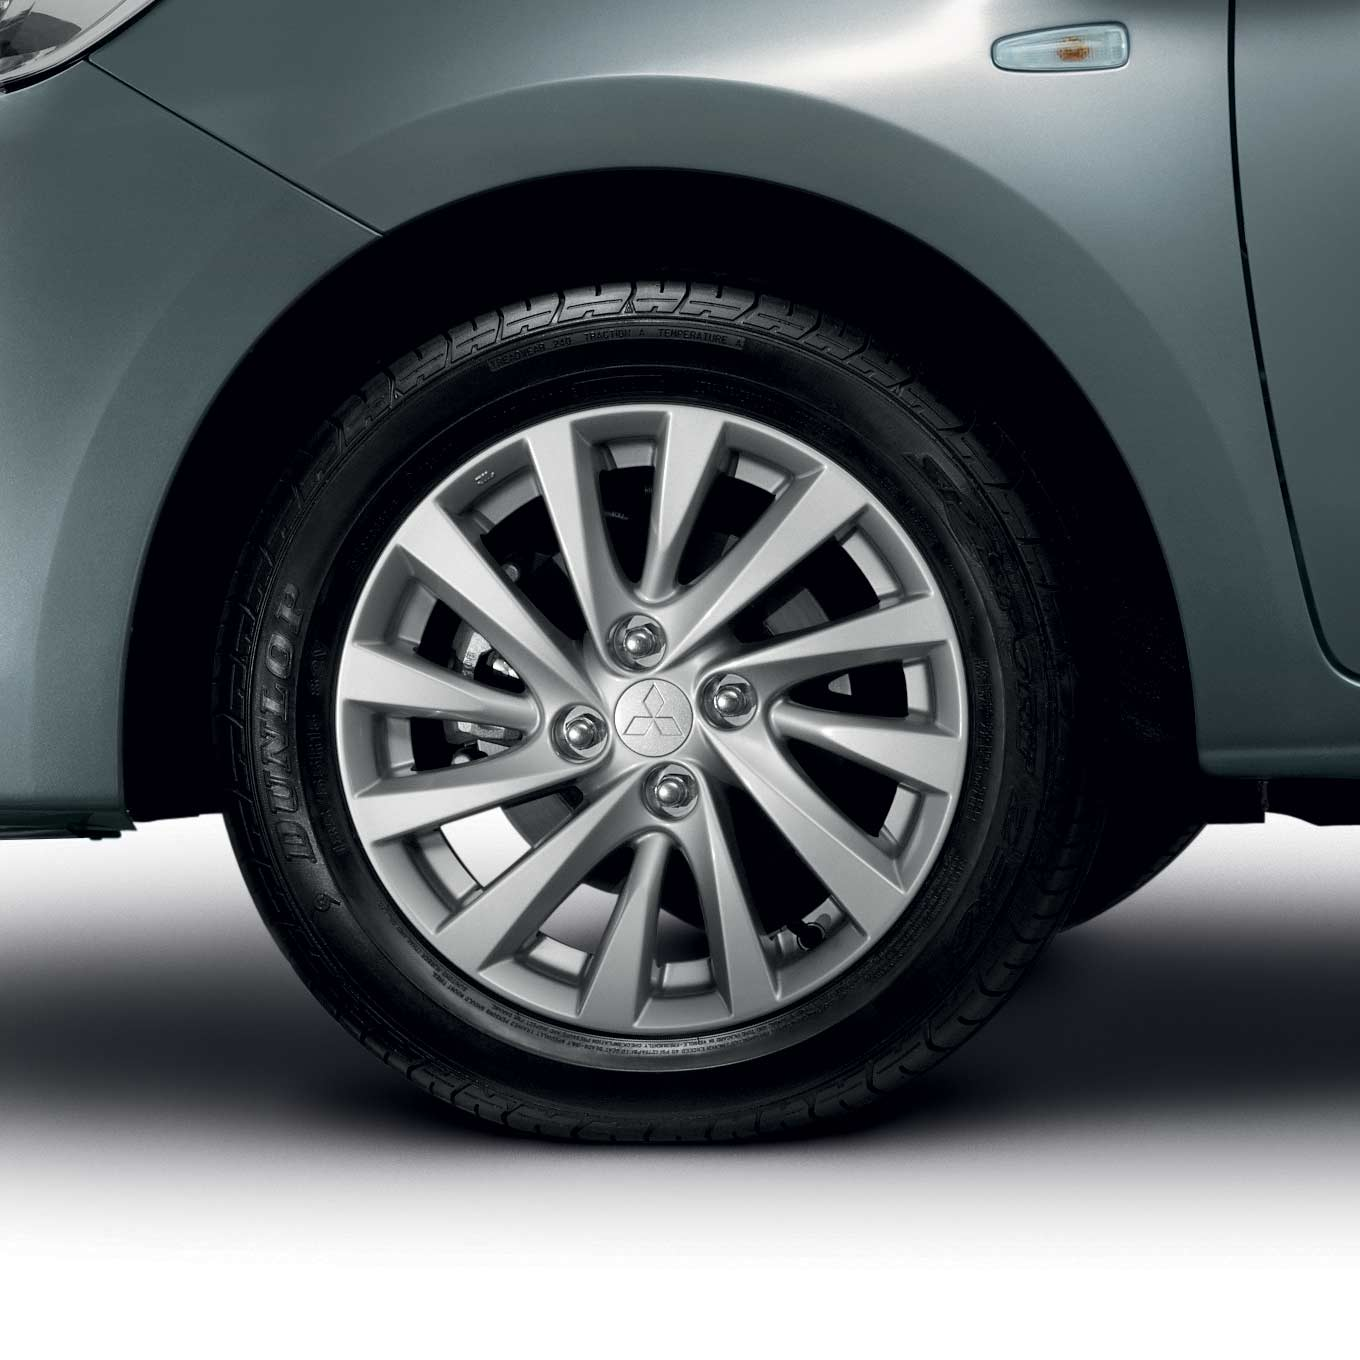 14 inch Alloy Wheels